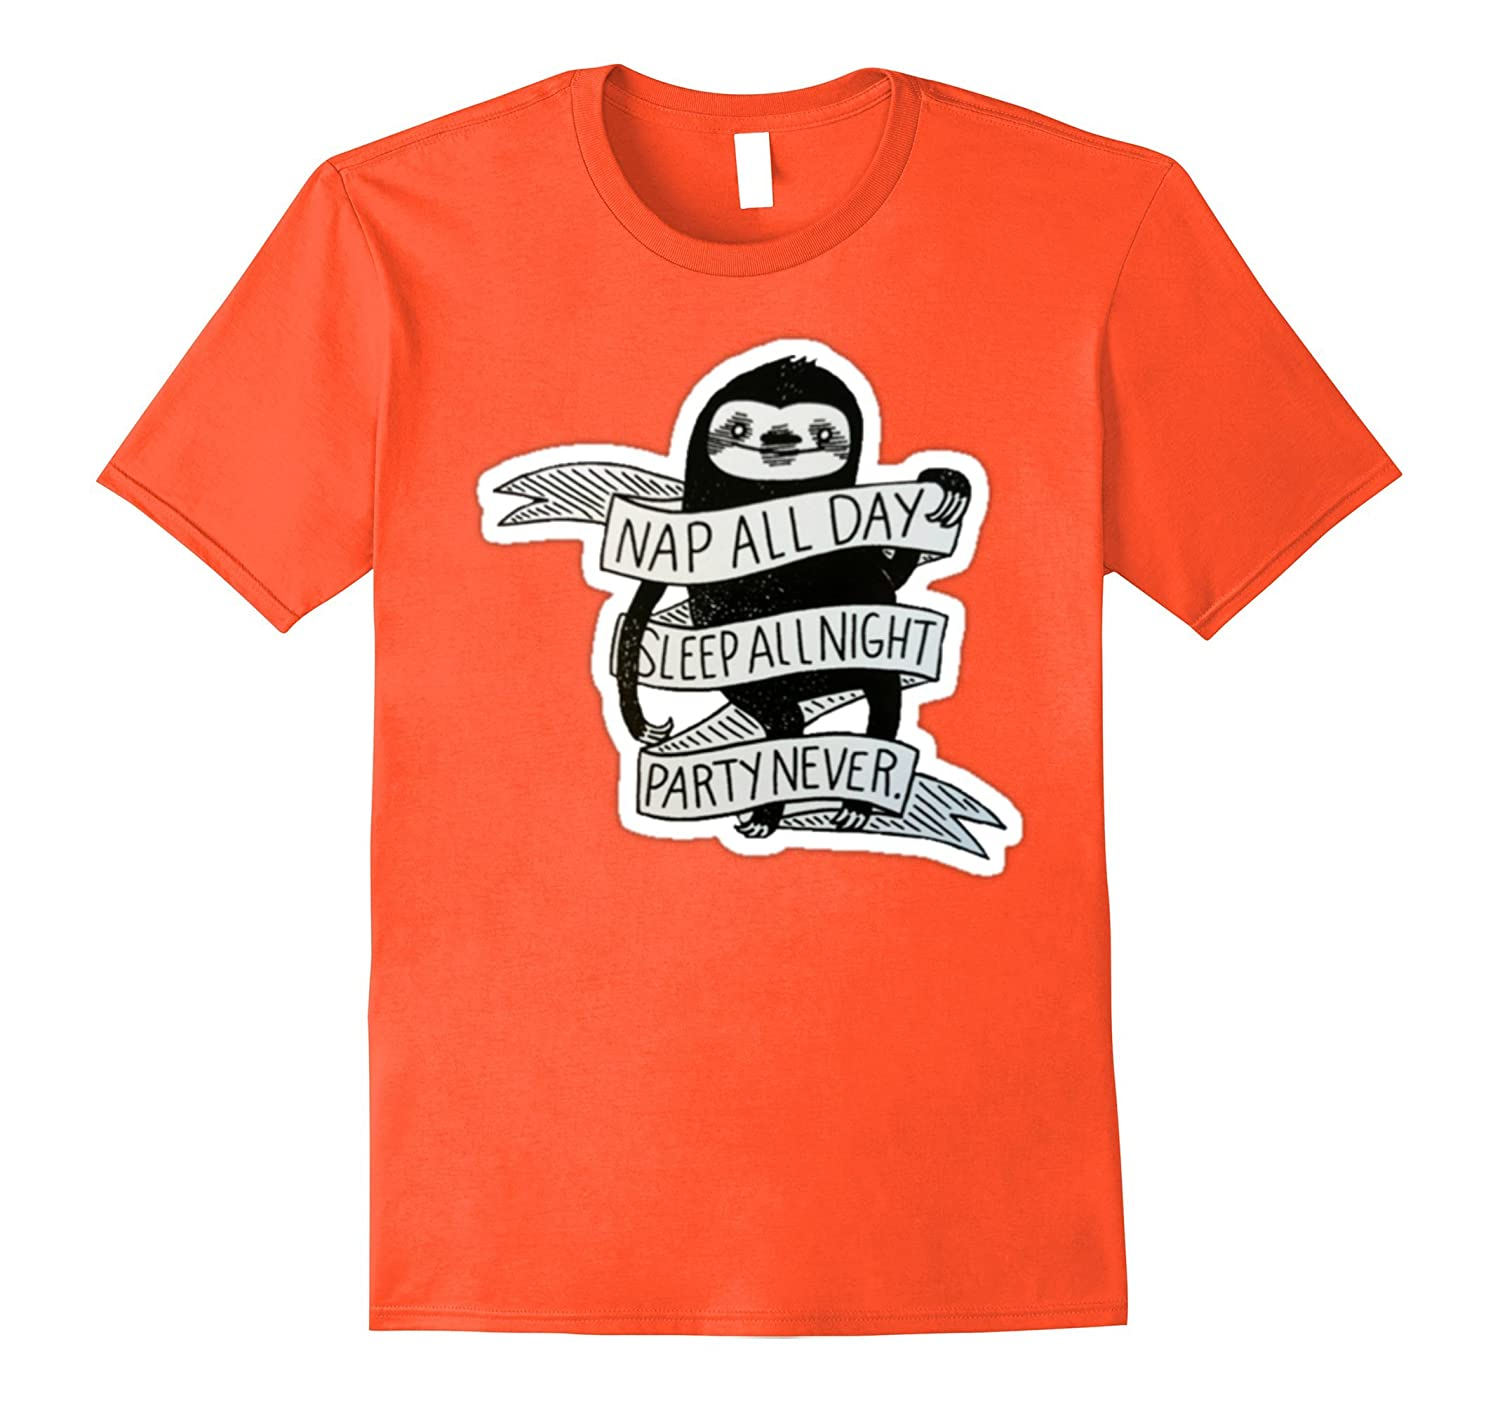 Nap All Day, Sleep All Night, Party Never I'm A Sloth Tshirt-Samdetee